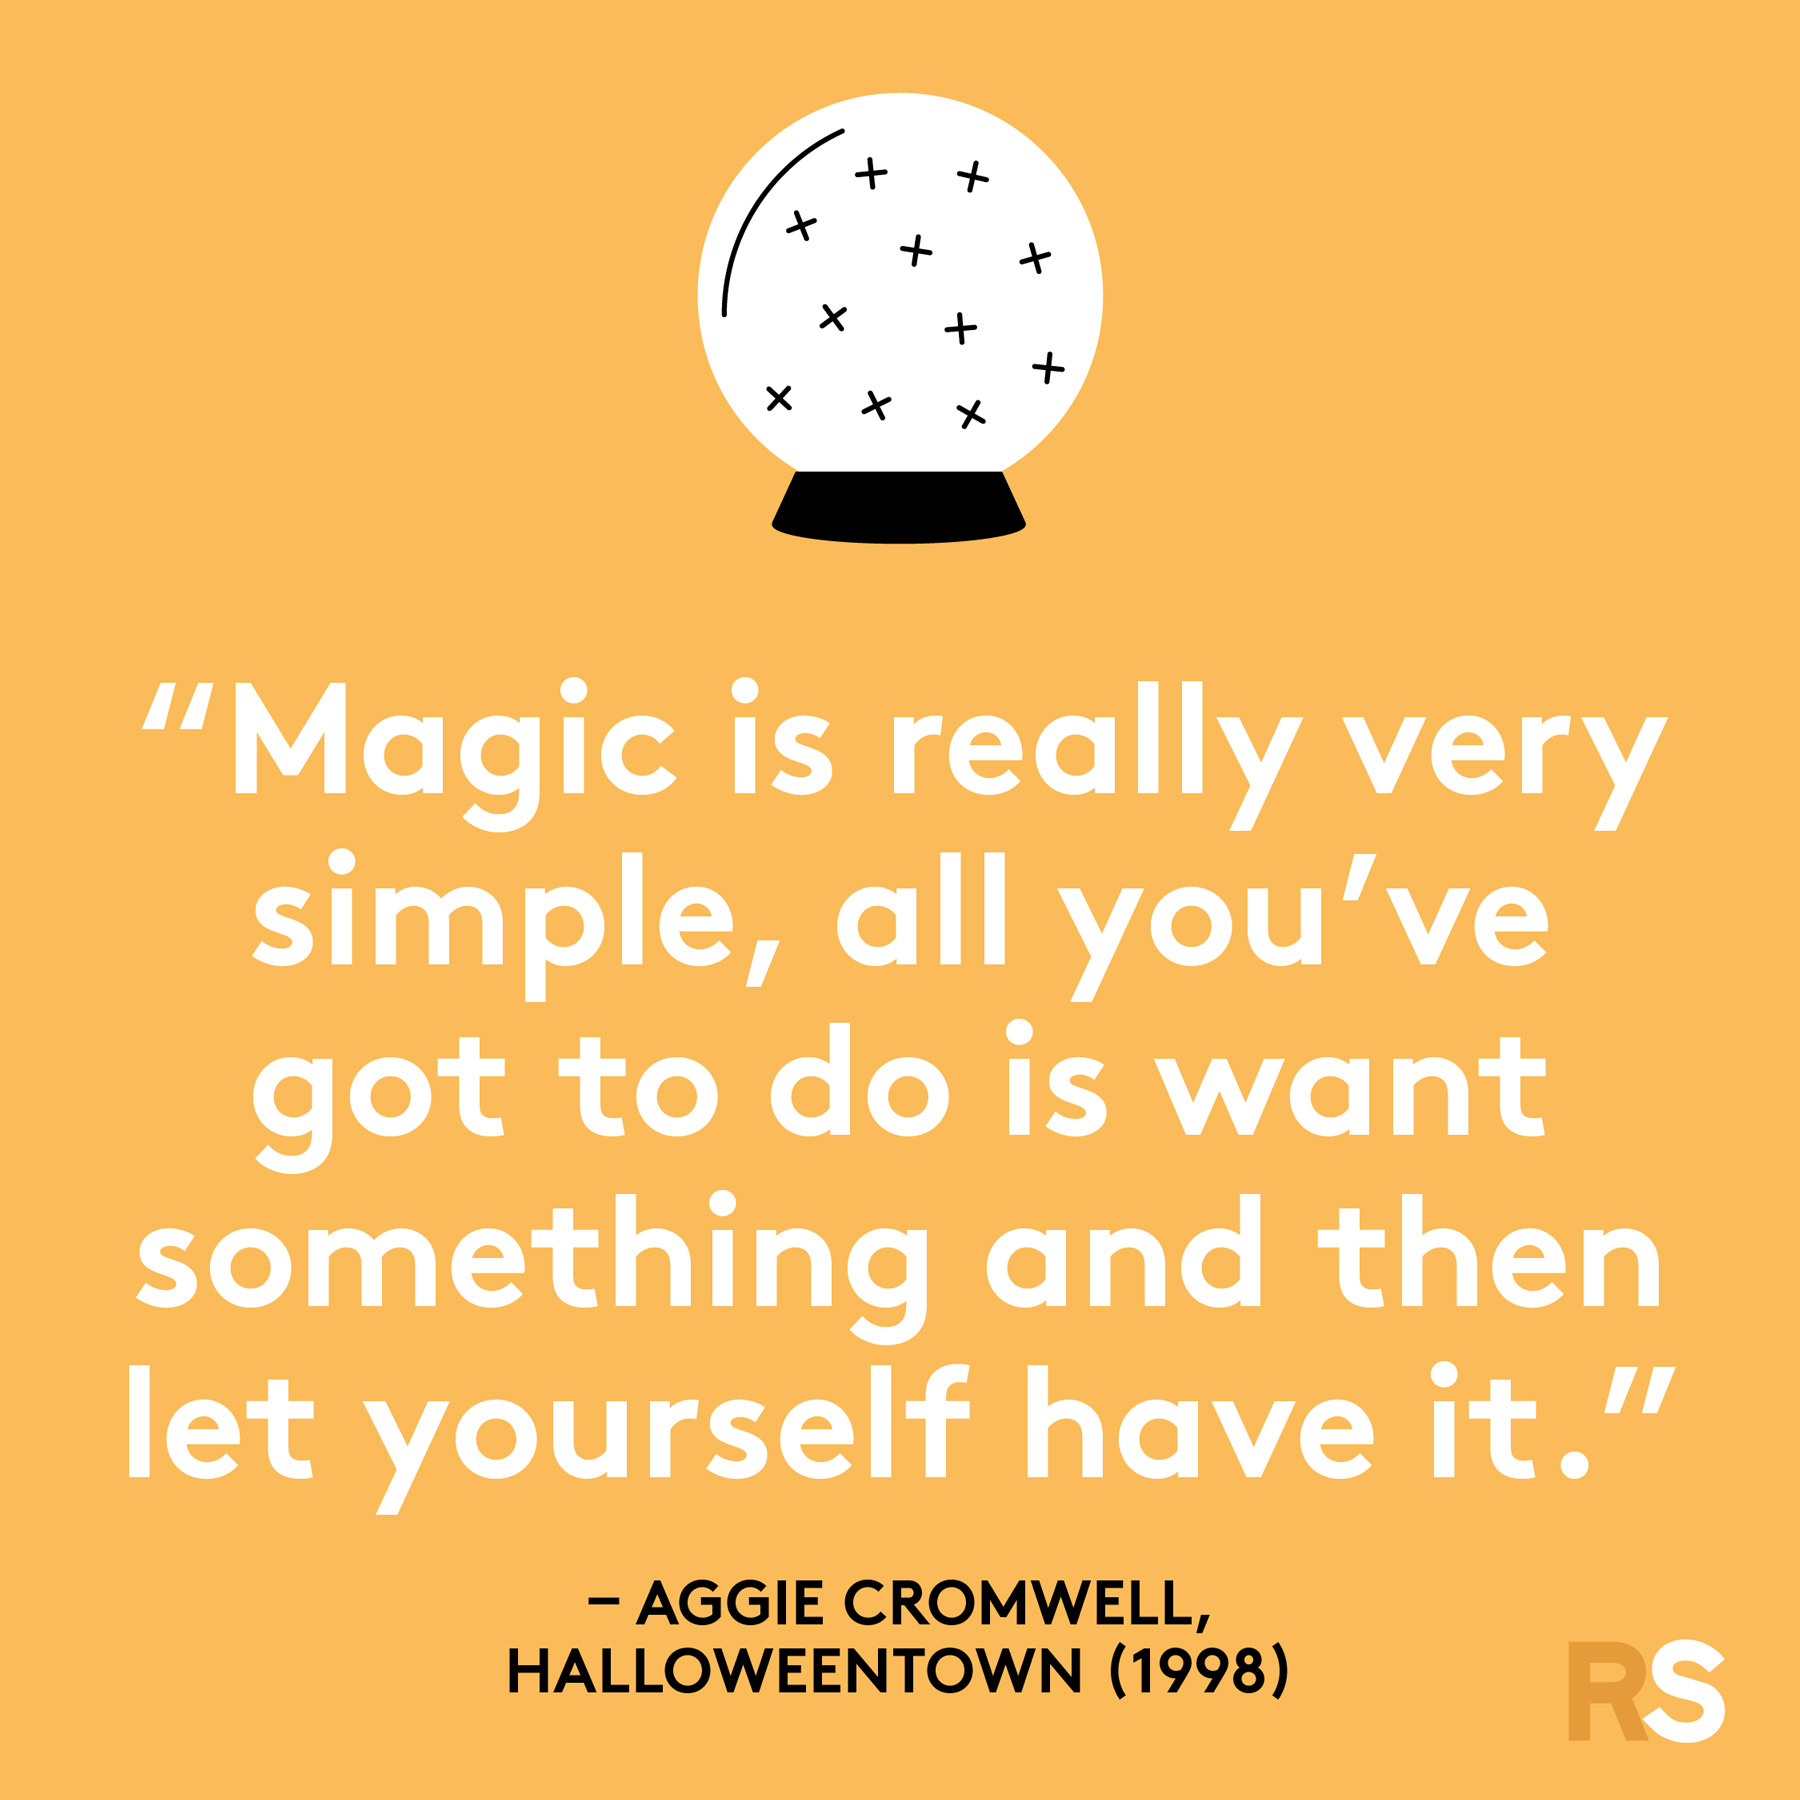 13 Best Famous Halloween Quotes, Sayings, Phrases | Real ...